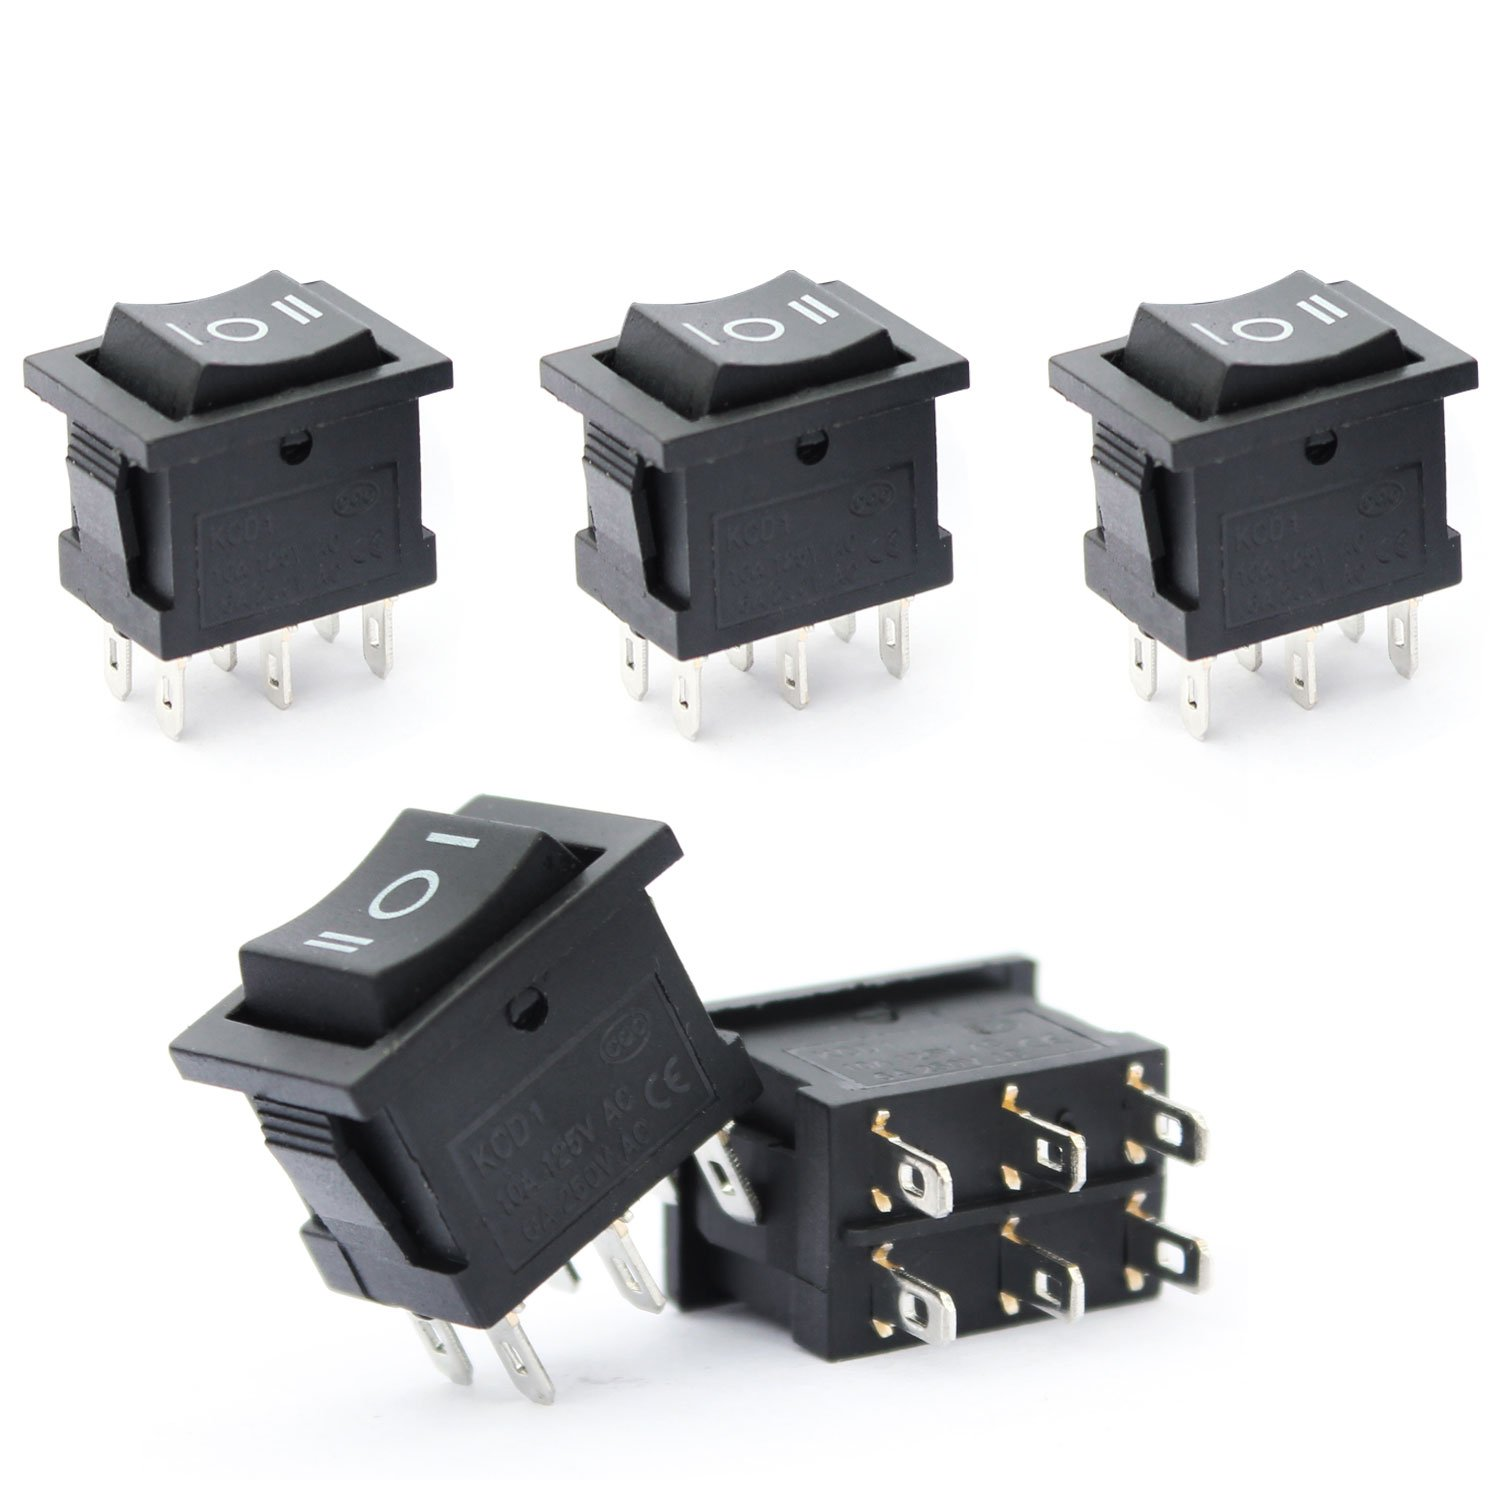 Ytian 5 Pcs On-Off-On Boat Rocker Switch for Car Household Appliances AC 6A/250V 10A/125V